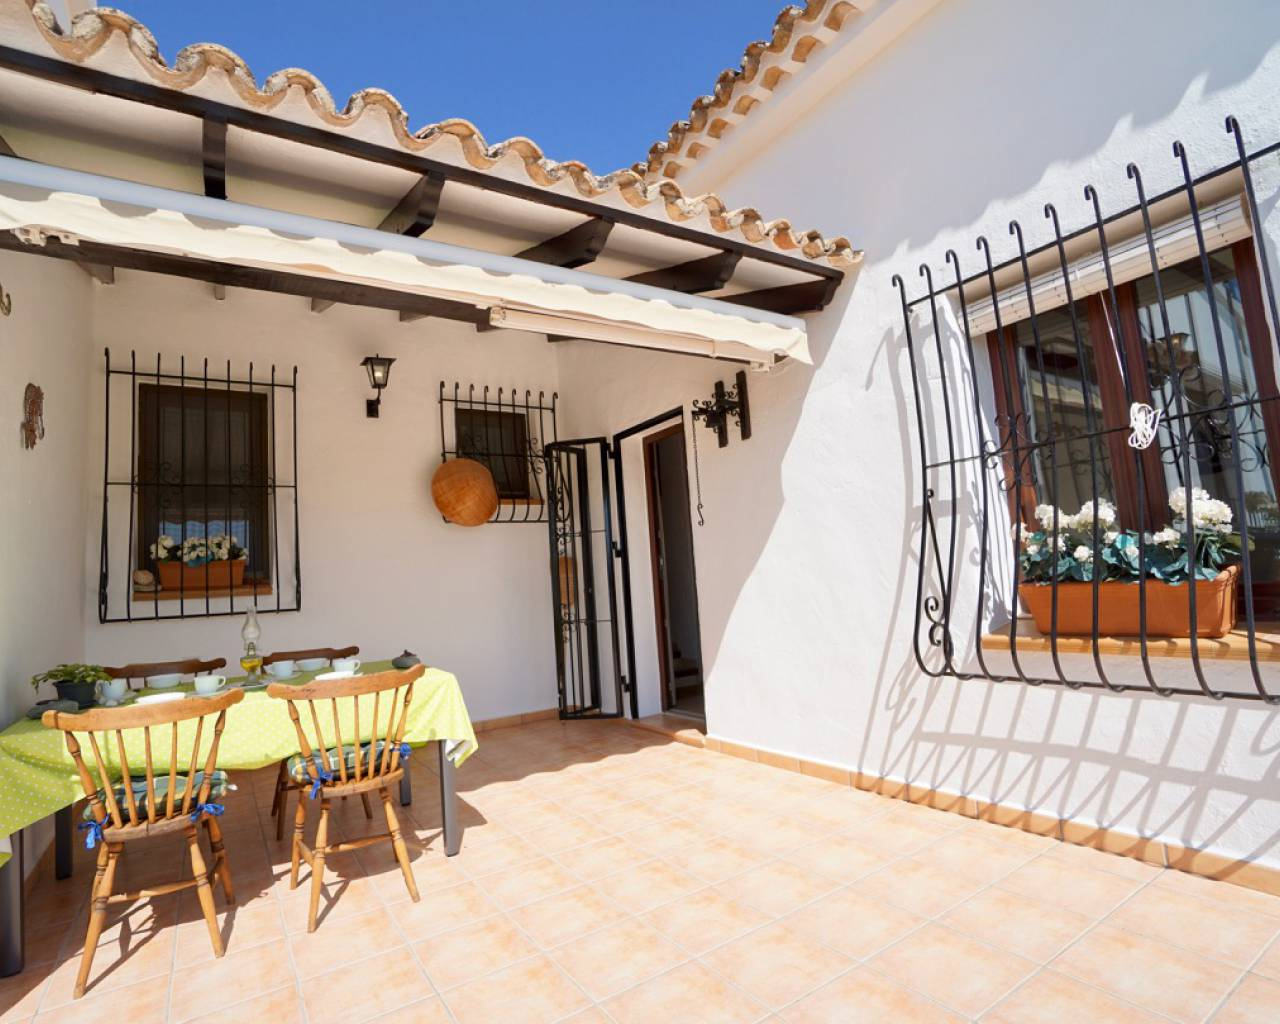 Sale - Townhouse / Terraced House - Benitachell - Moraira Alcasar